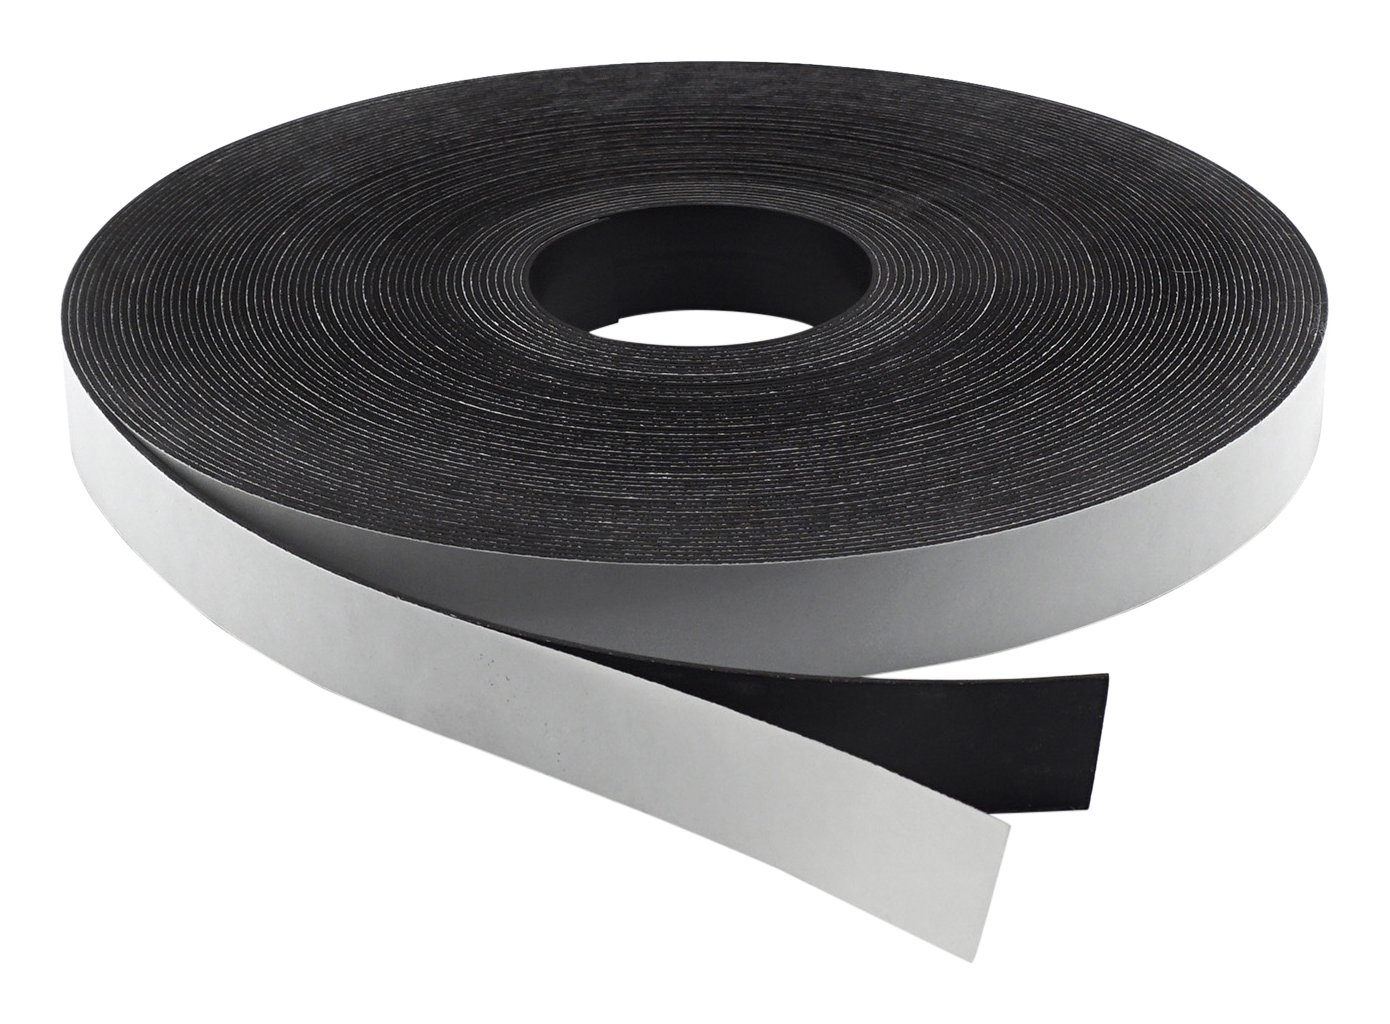 Master Ranking Popular product TOP9 Magnetics Flexible Magnet Strip 1 16 Adhesive with Back